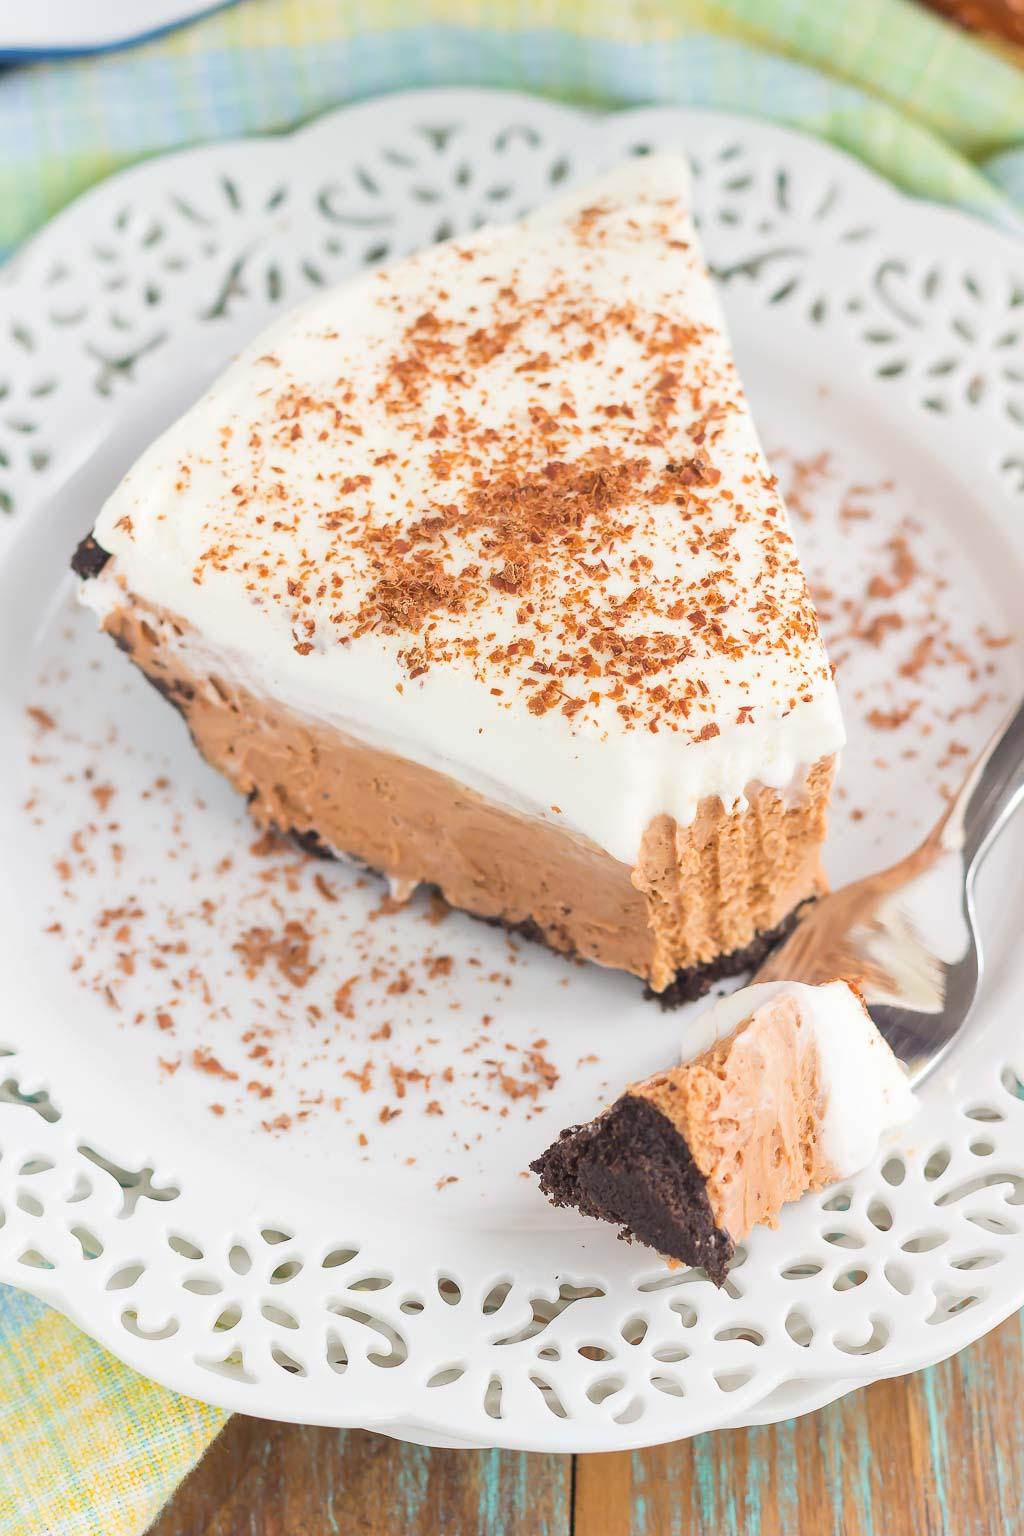 This Chocolate Nutella Cream Pie is filled with a smooth and creamy base of nutella, enveloped in a chocolate cookie crust and topped with homemade whipped cream. Easy to make and ready in no time, this decadent dessert is perfect for impressing dessert lovers everywhere!